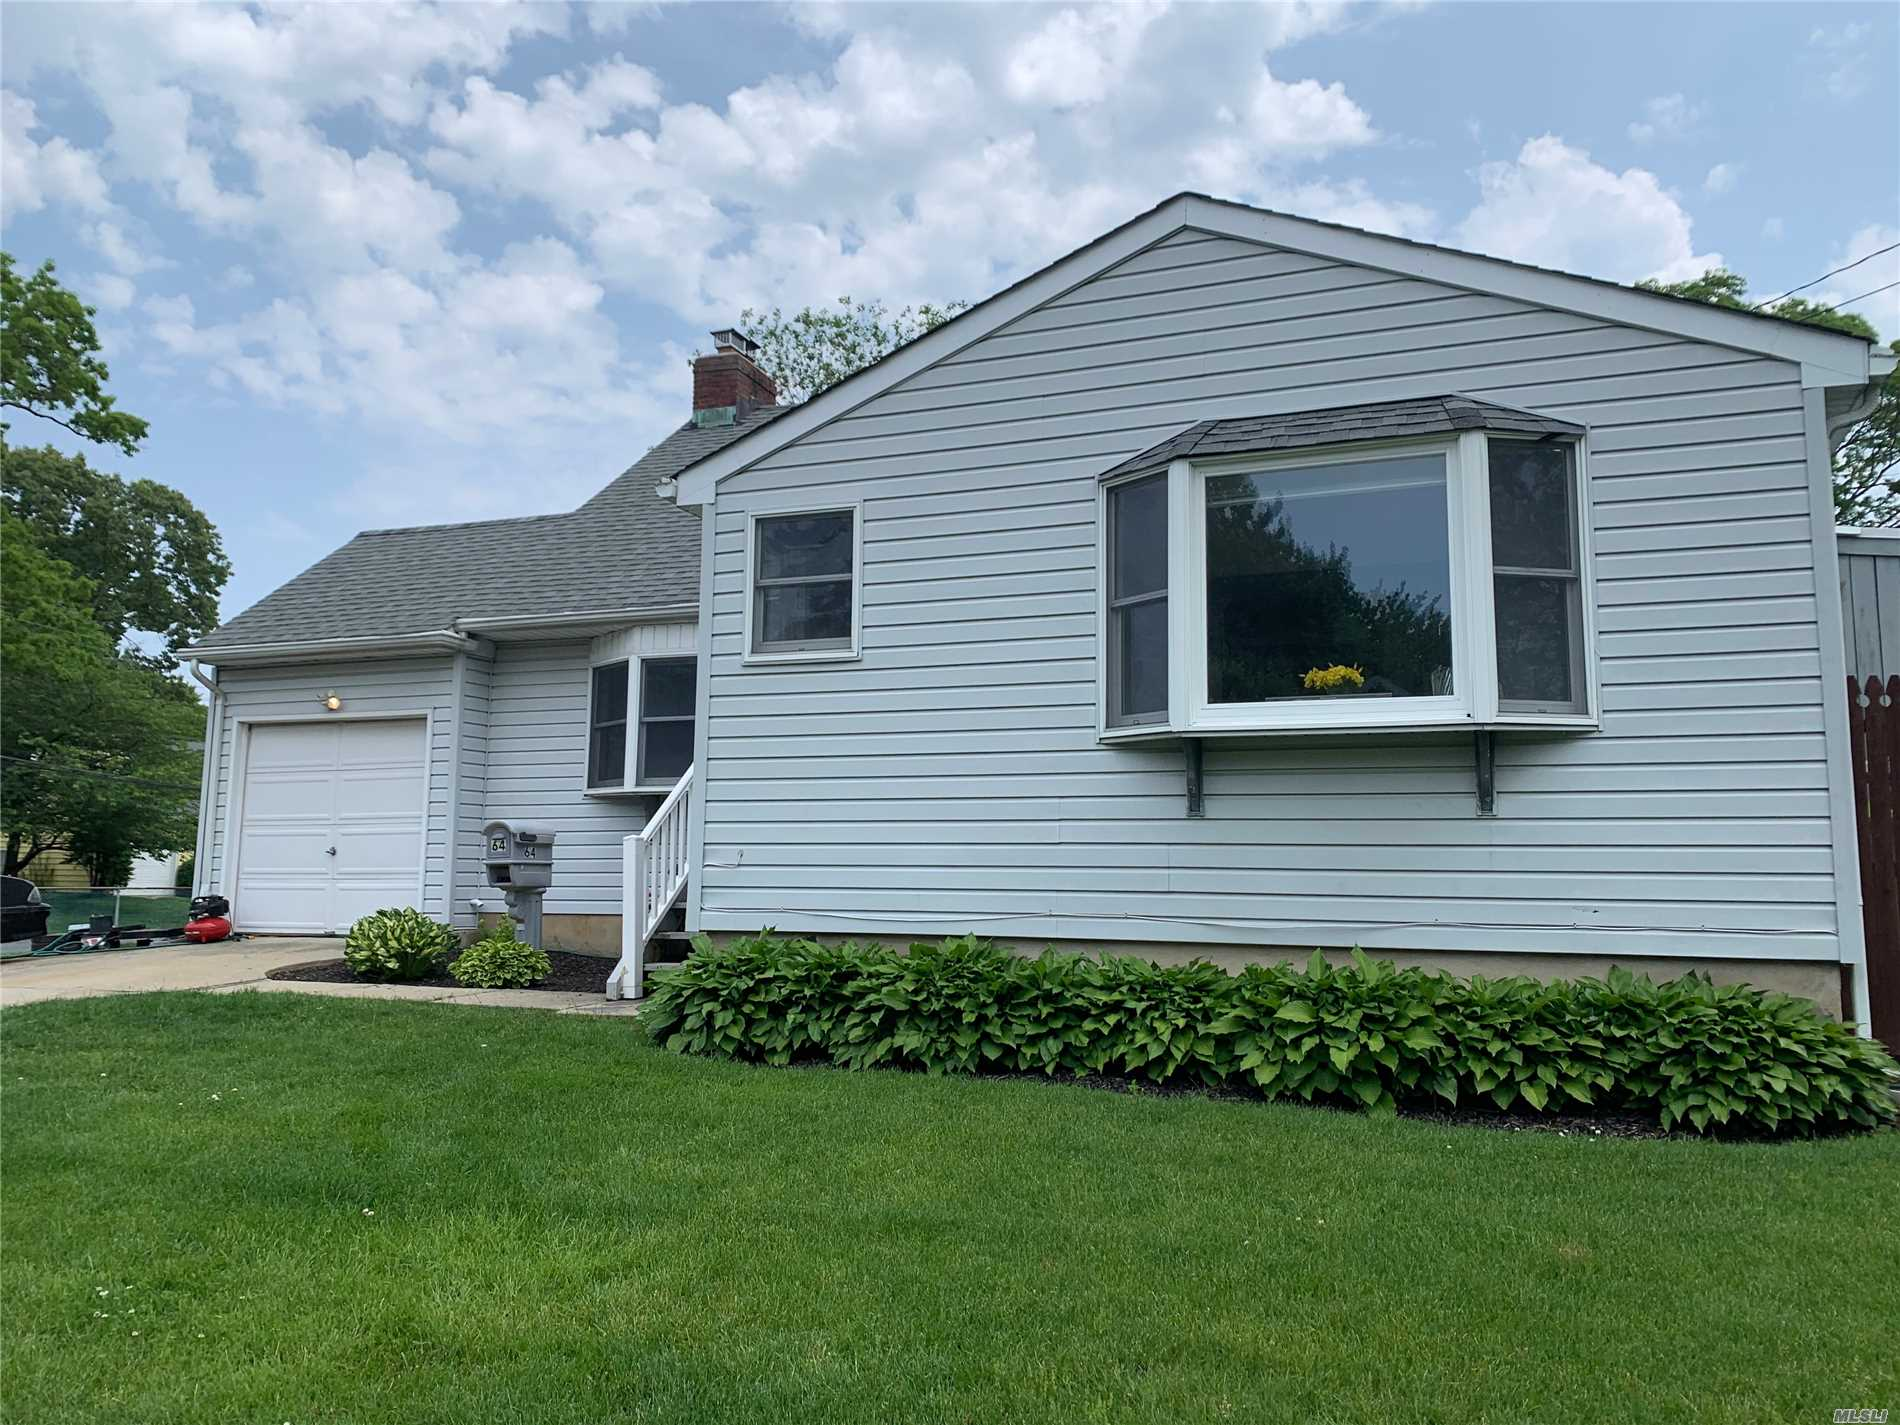 Don't miss this beautiful 4 bedroom, 1 1/2 bath cape with gorgeous renovated kitchen, hardwood floors throughout, CAC, 7 year old roof, 200amp electric, gas heat with 5 zones! Gas fireplace, Tankless hot water heater, washer/dryer on first floor on a corner property in the desirable Southard's Pond area of Babylon!